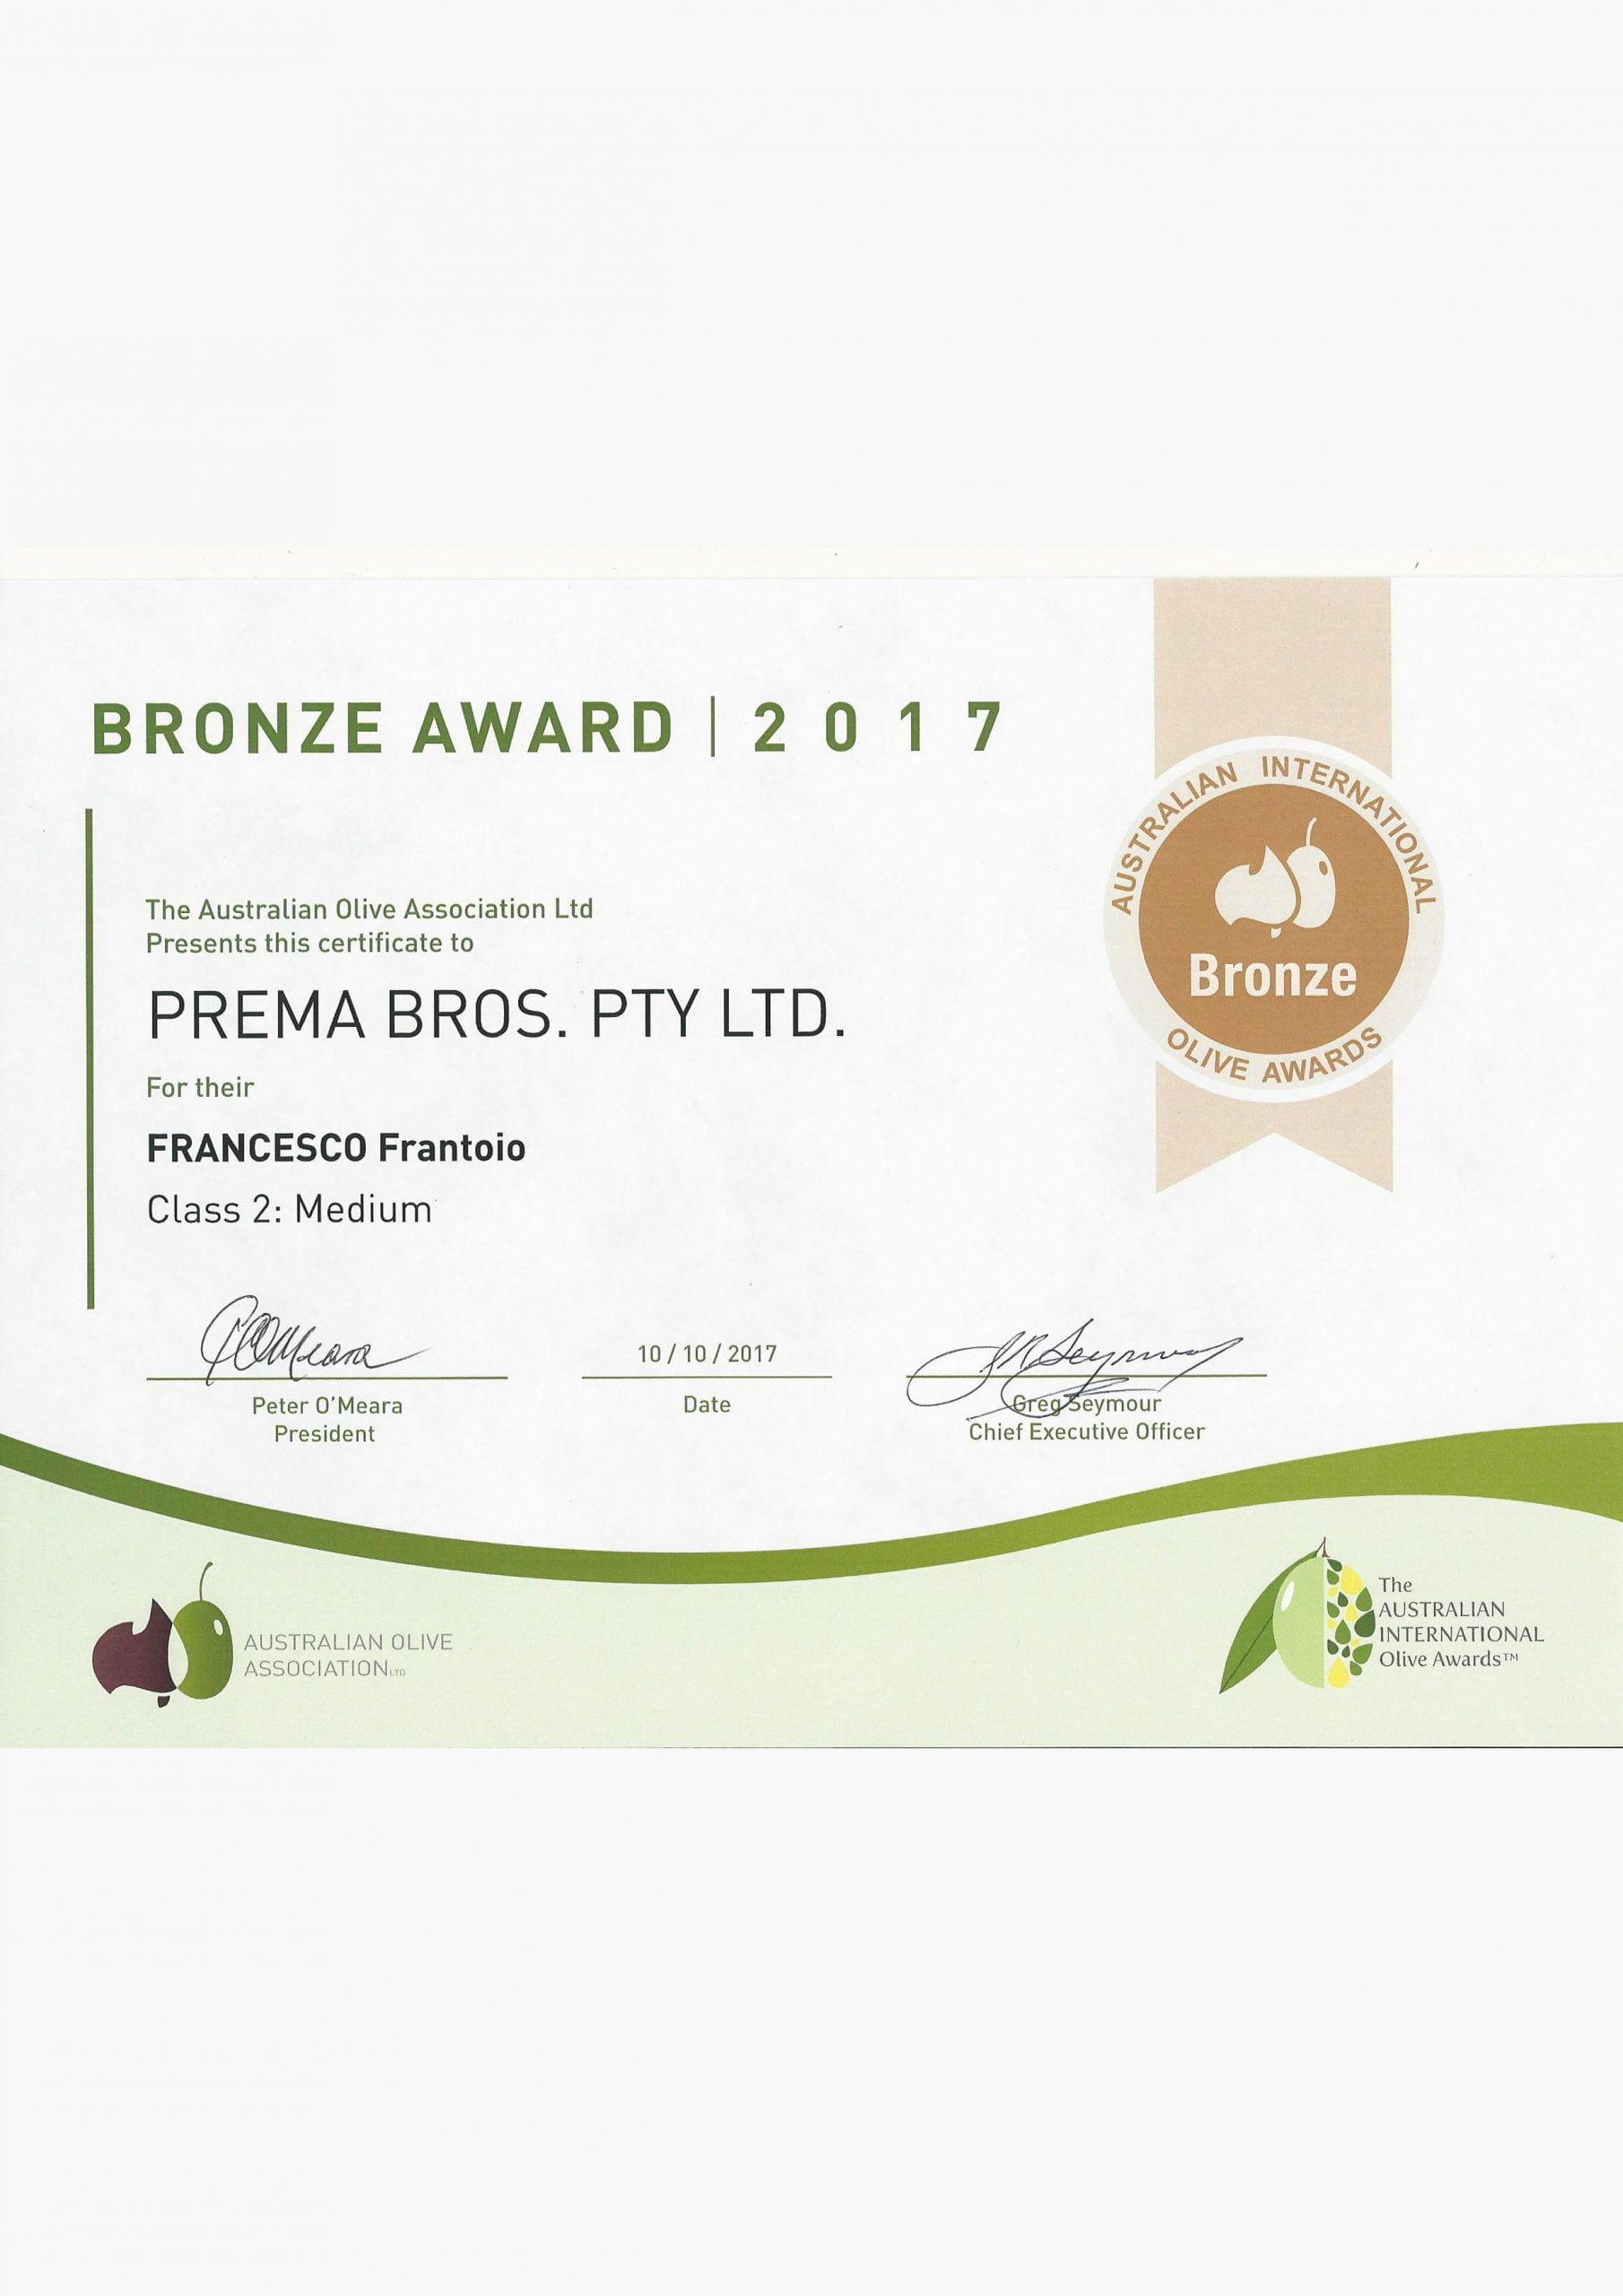 Bronze award Australian International Olive Awards